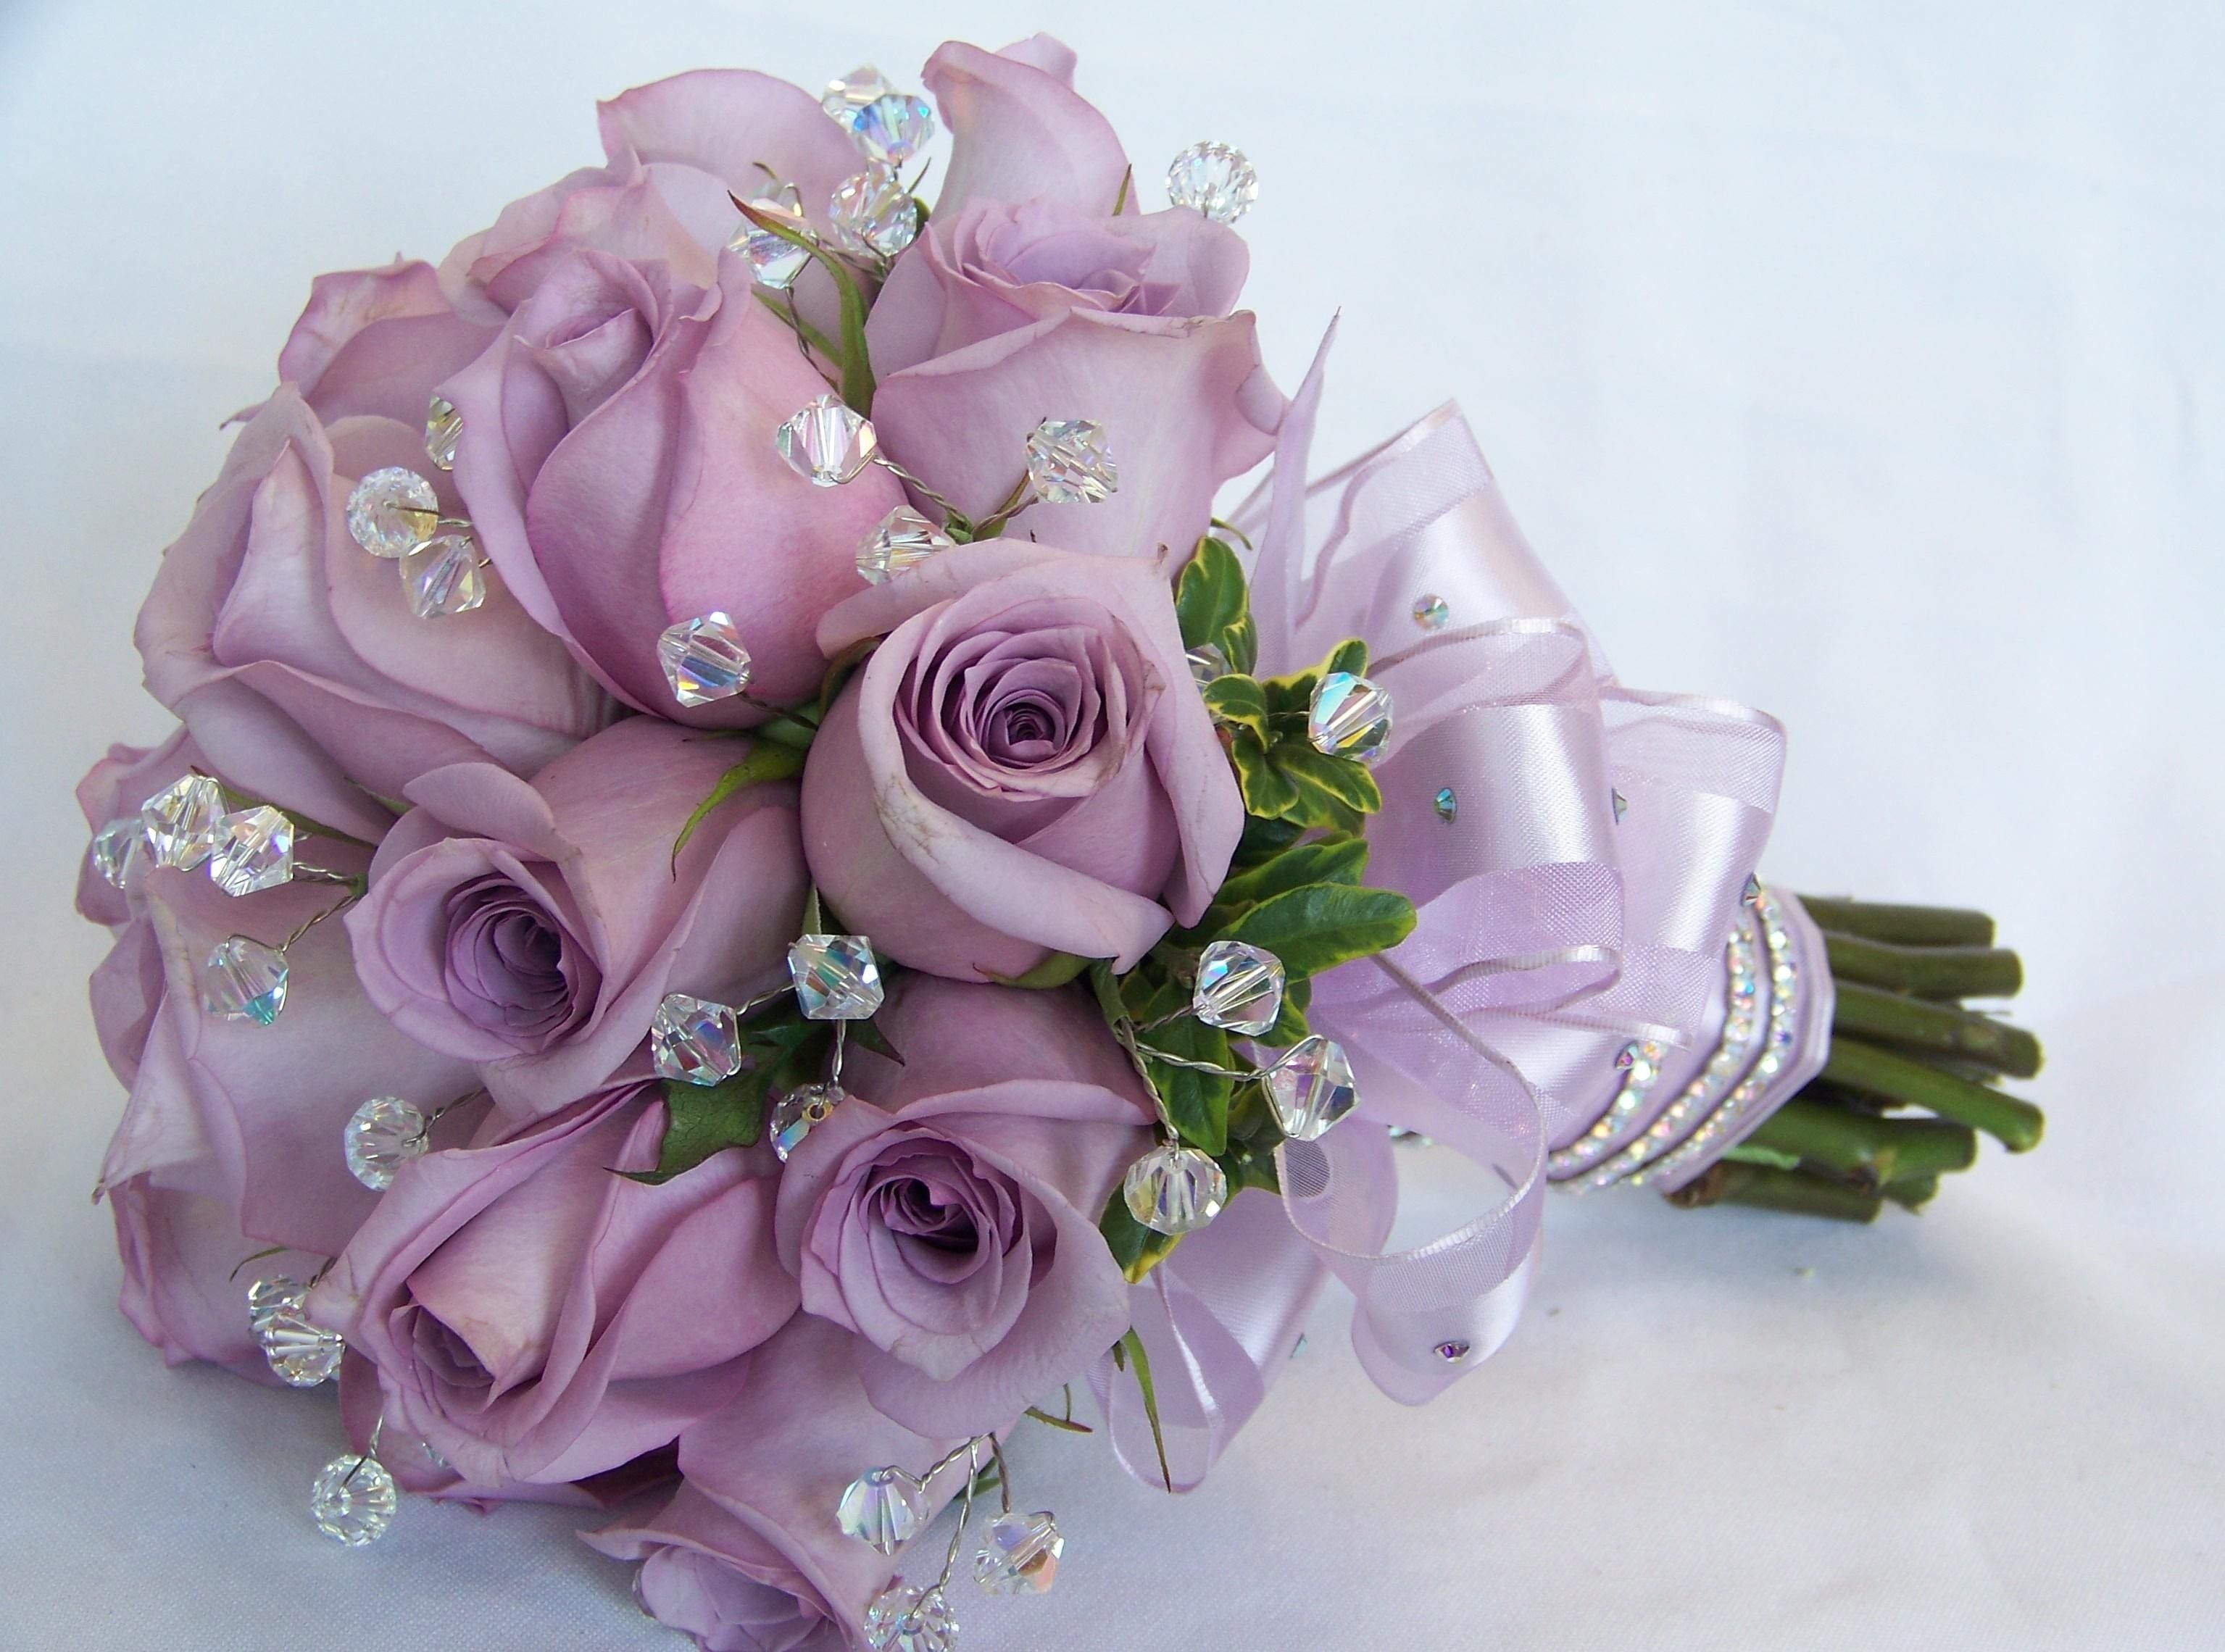 Violet wedding bouquet light purple rose flowers wedding bouquet violet wedding bouquet light purple rose flowers wedding bouquet hd wallpaper hd background dhlflorist Image collections